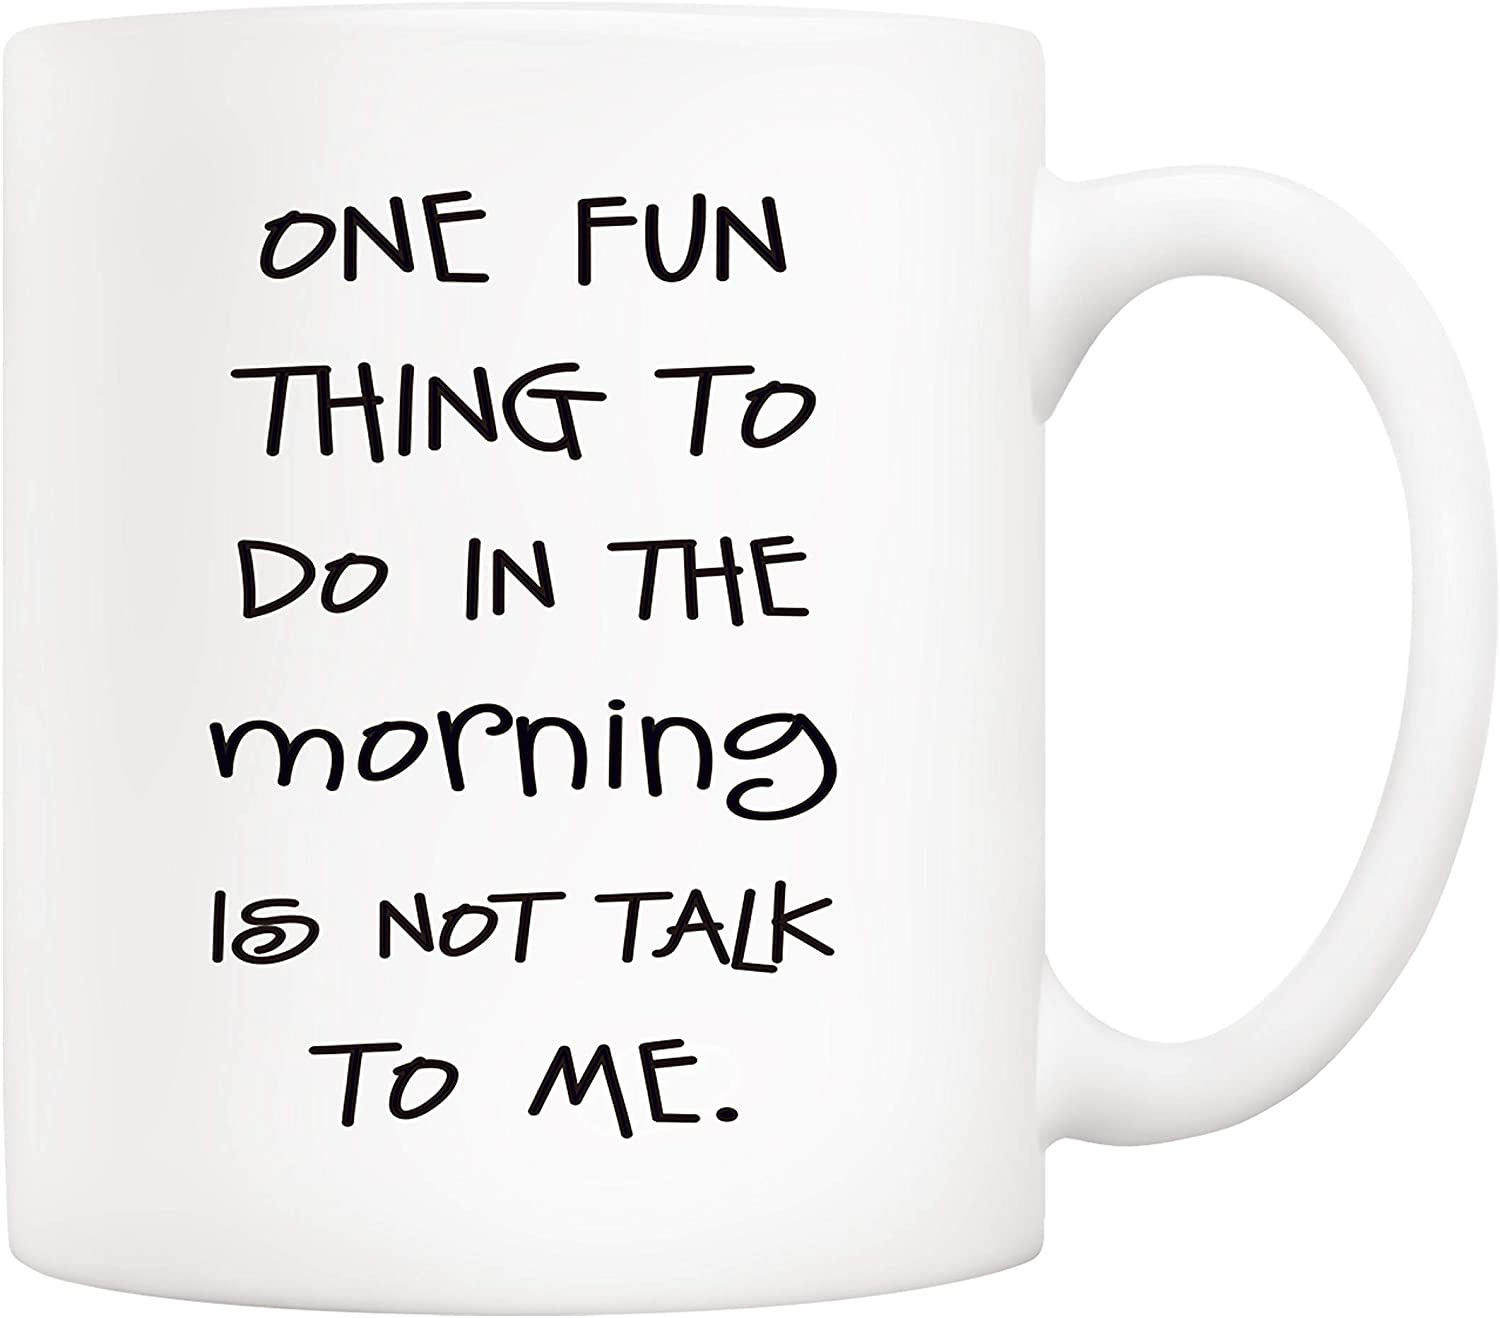 5Aup Funny Quote Coffee Mug, One Fun Thing To Do In The Morning Is Not Talk To Me Cups 11 Oz, Great Cute Office Gift for Friend Men Women